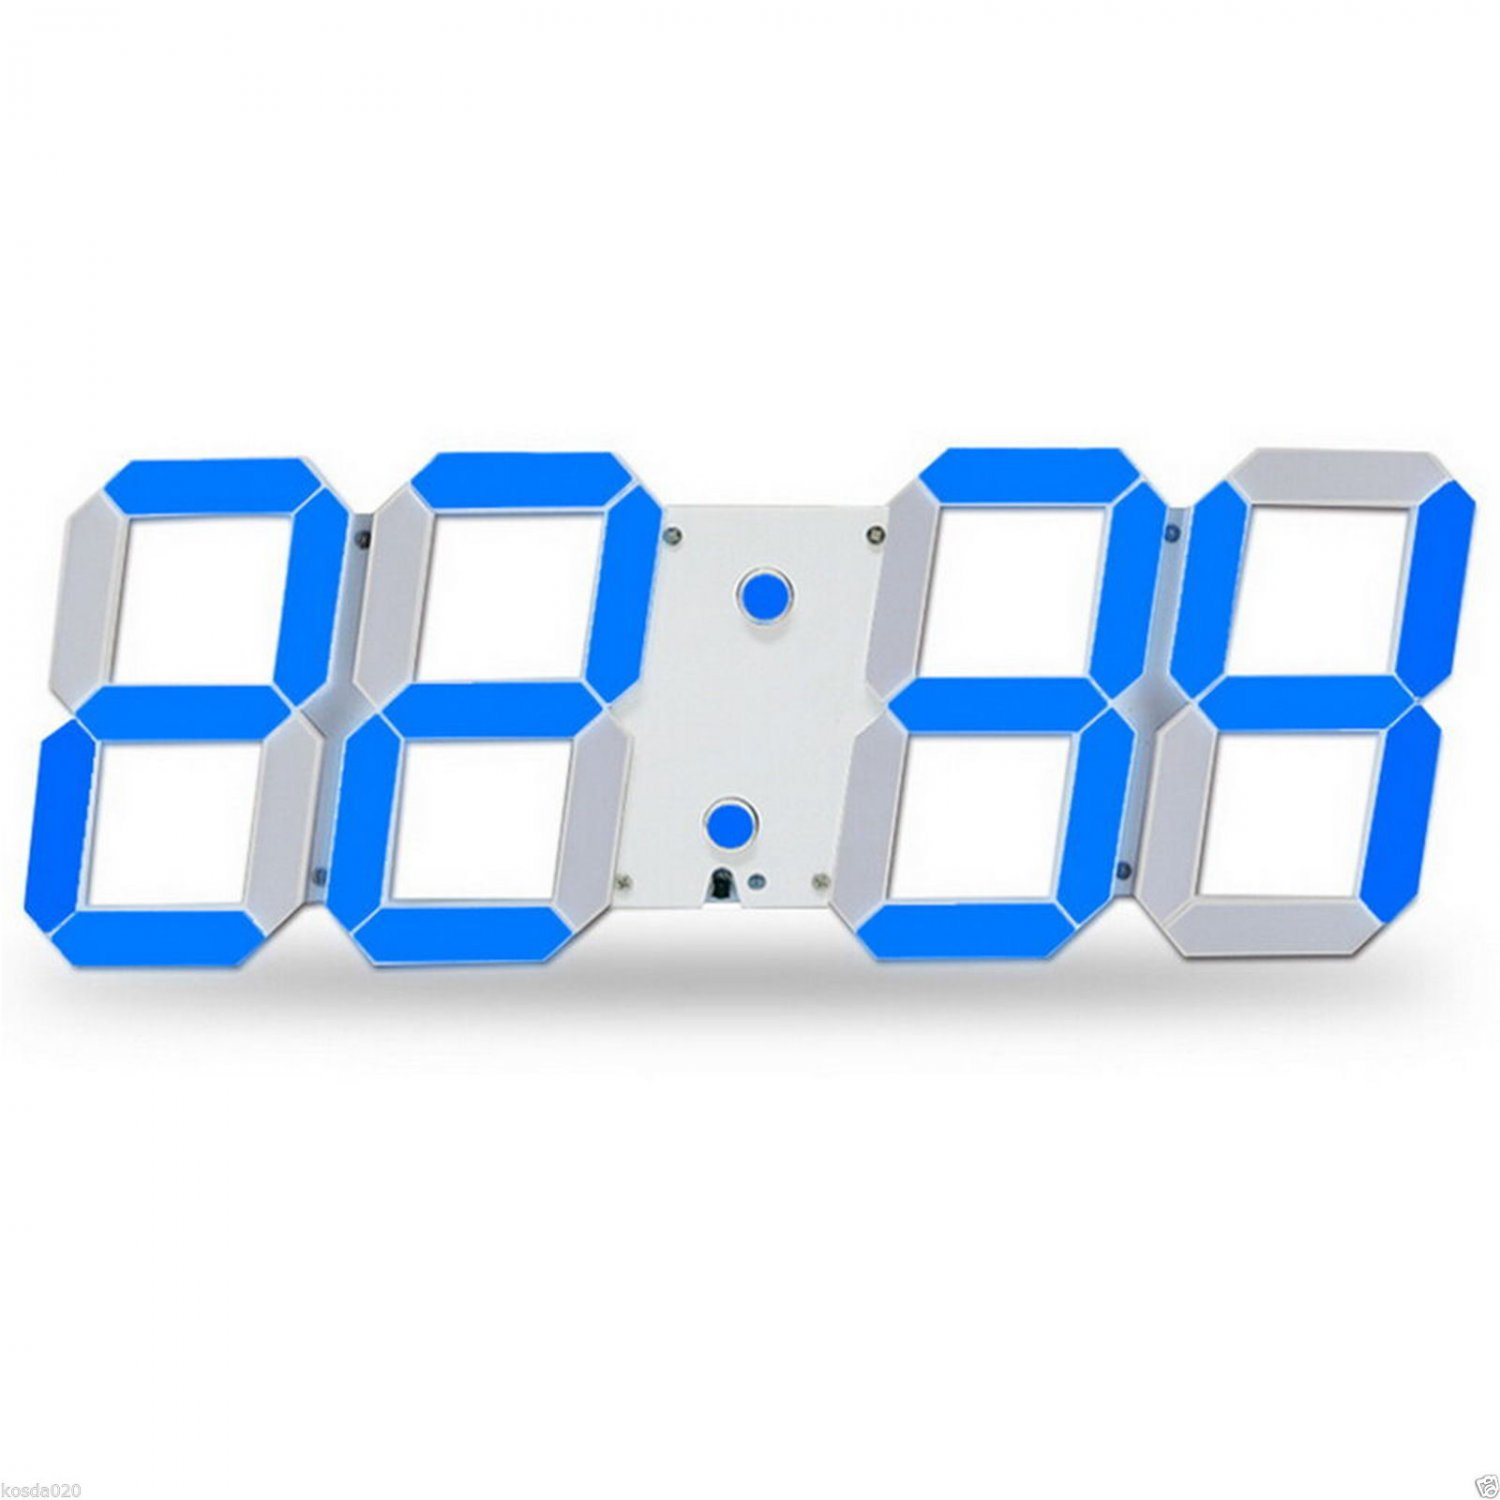 Modern Large Oversize Wall Clock Led Digital Countdown Watch 12 24 Hour Display